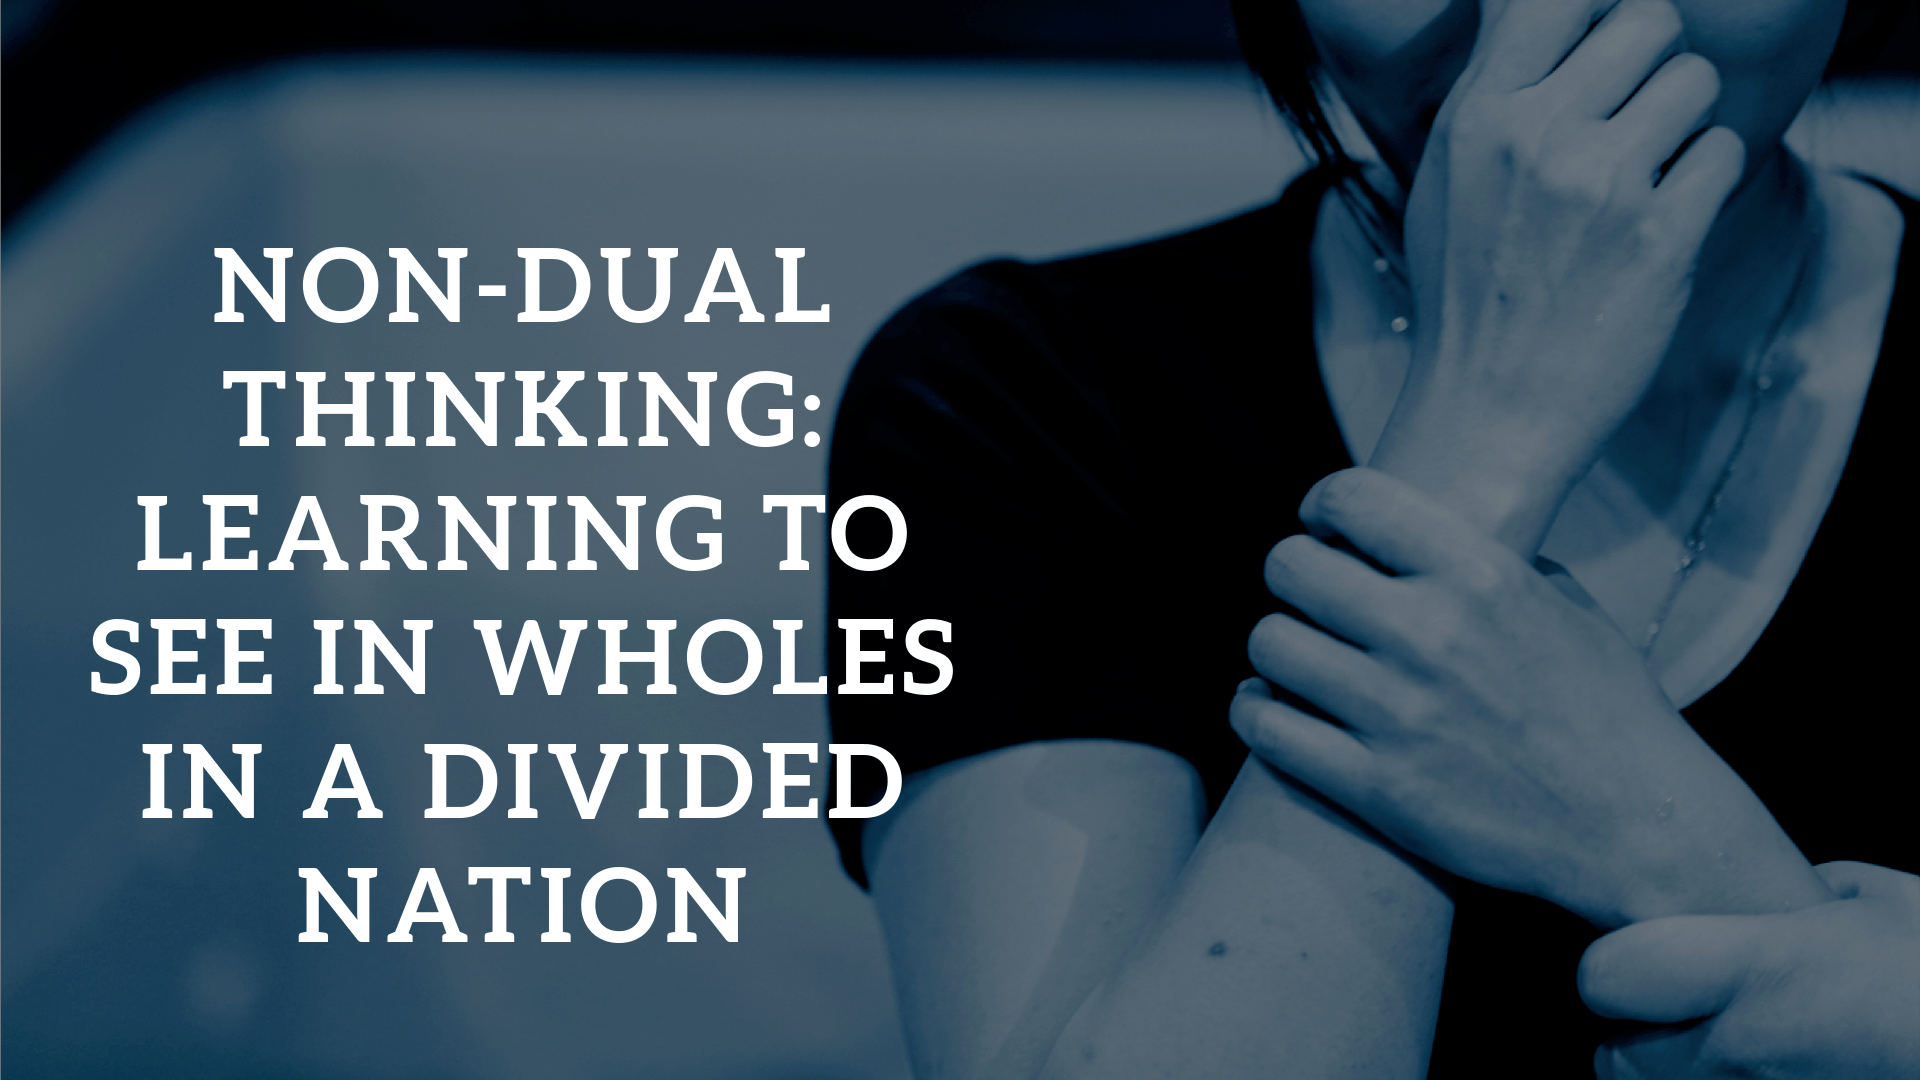 Non-Dual Thinking: Learning to See in Wholes in a Divided Nation